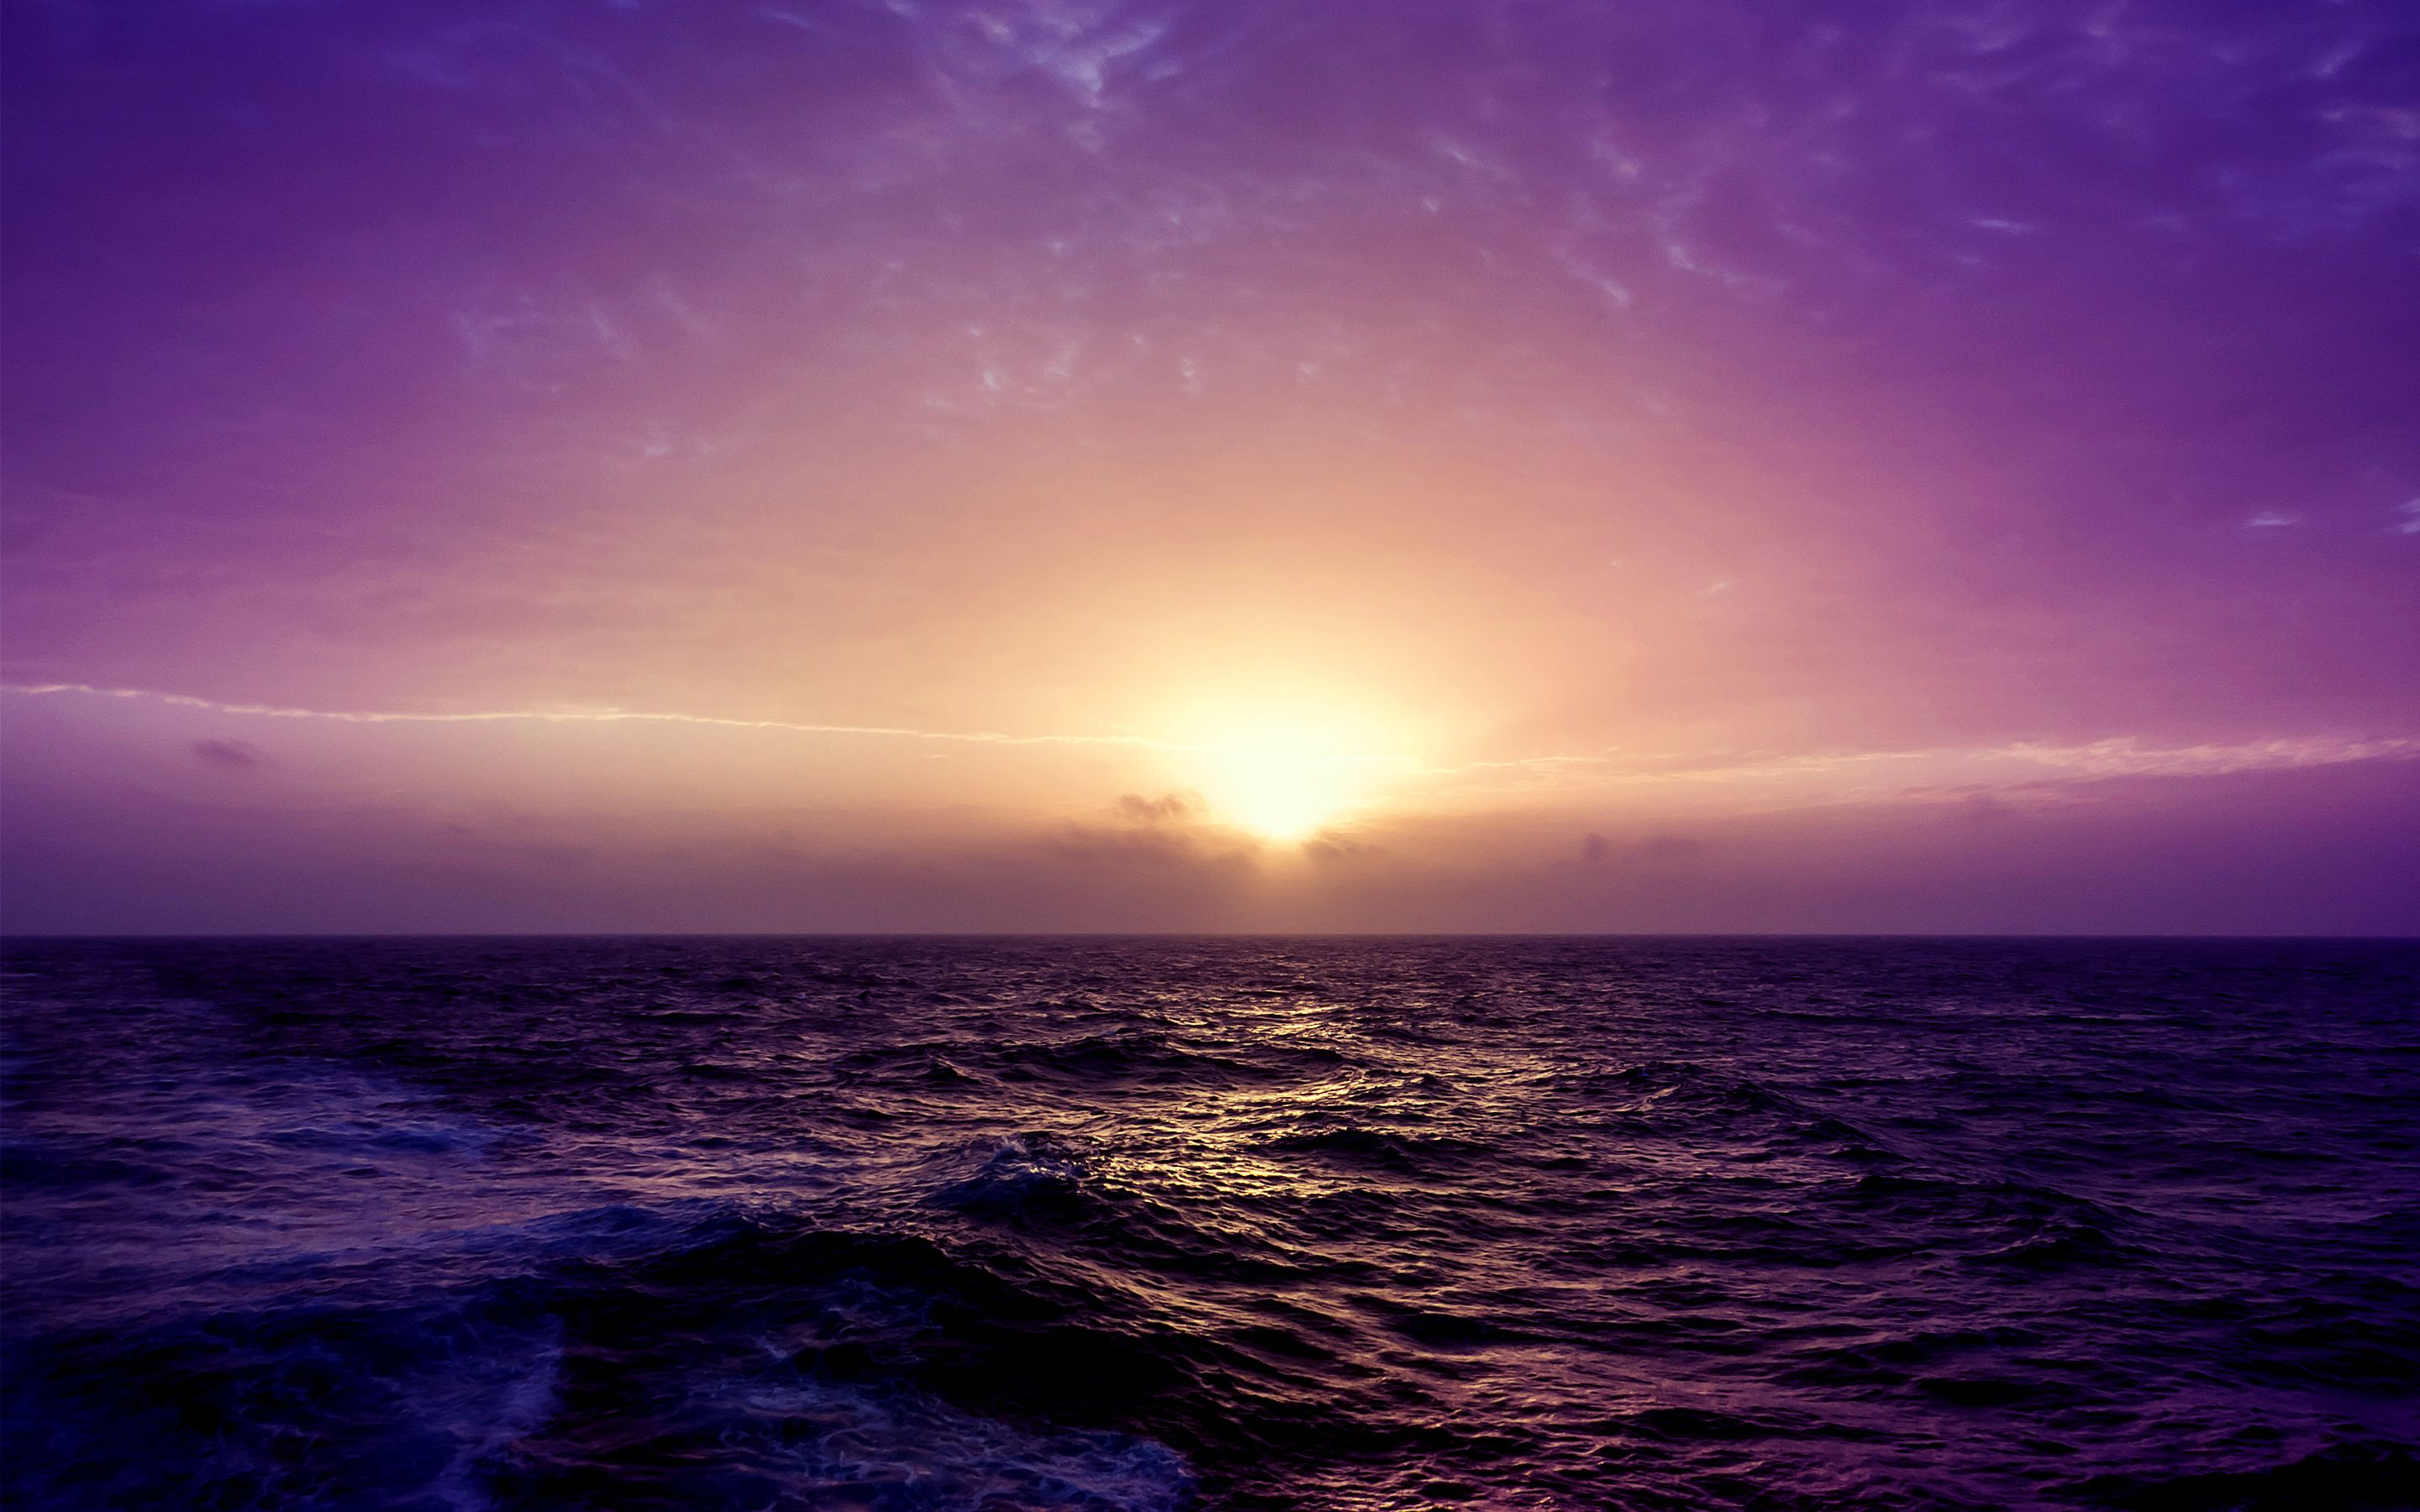 Cute Hawii Wallpapers Stunning Collection Of Purple Sky Sunset Pictures For Hd